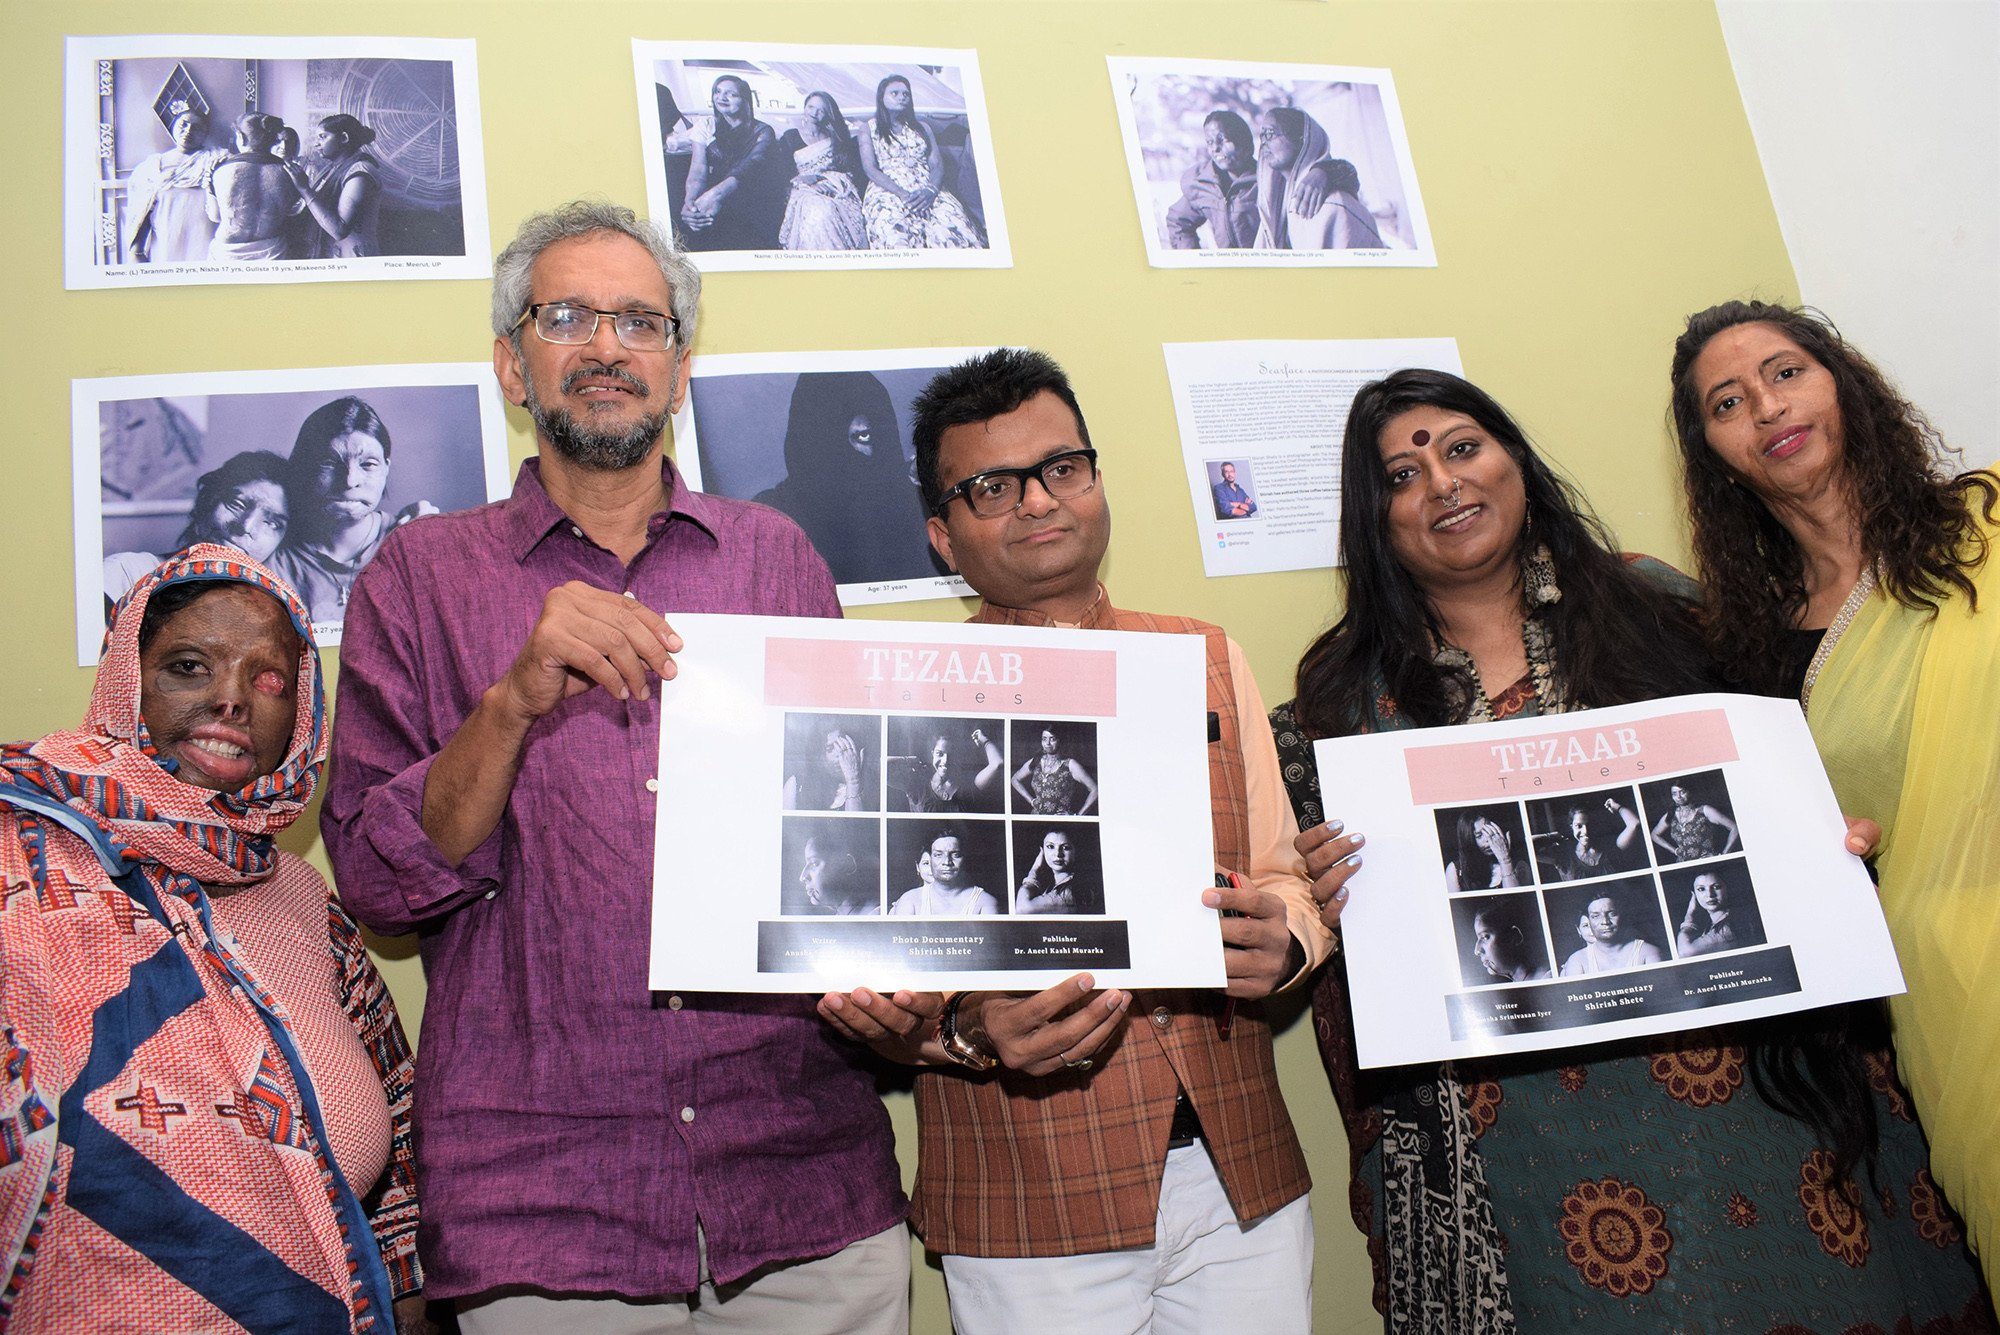 Scarface: Shirish Shete's photo documentary on Acid Survivors will give you goosebumps